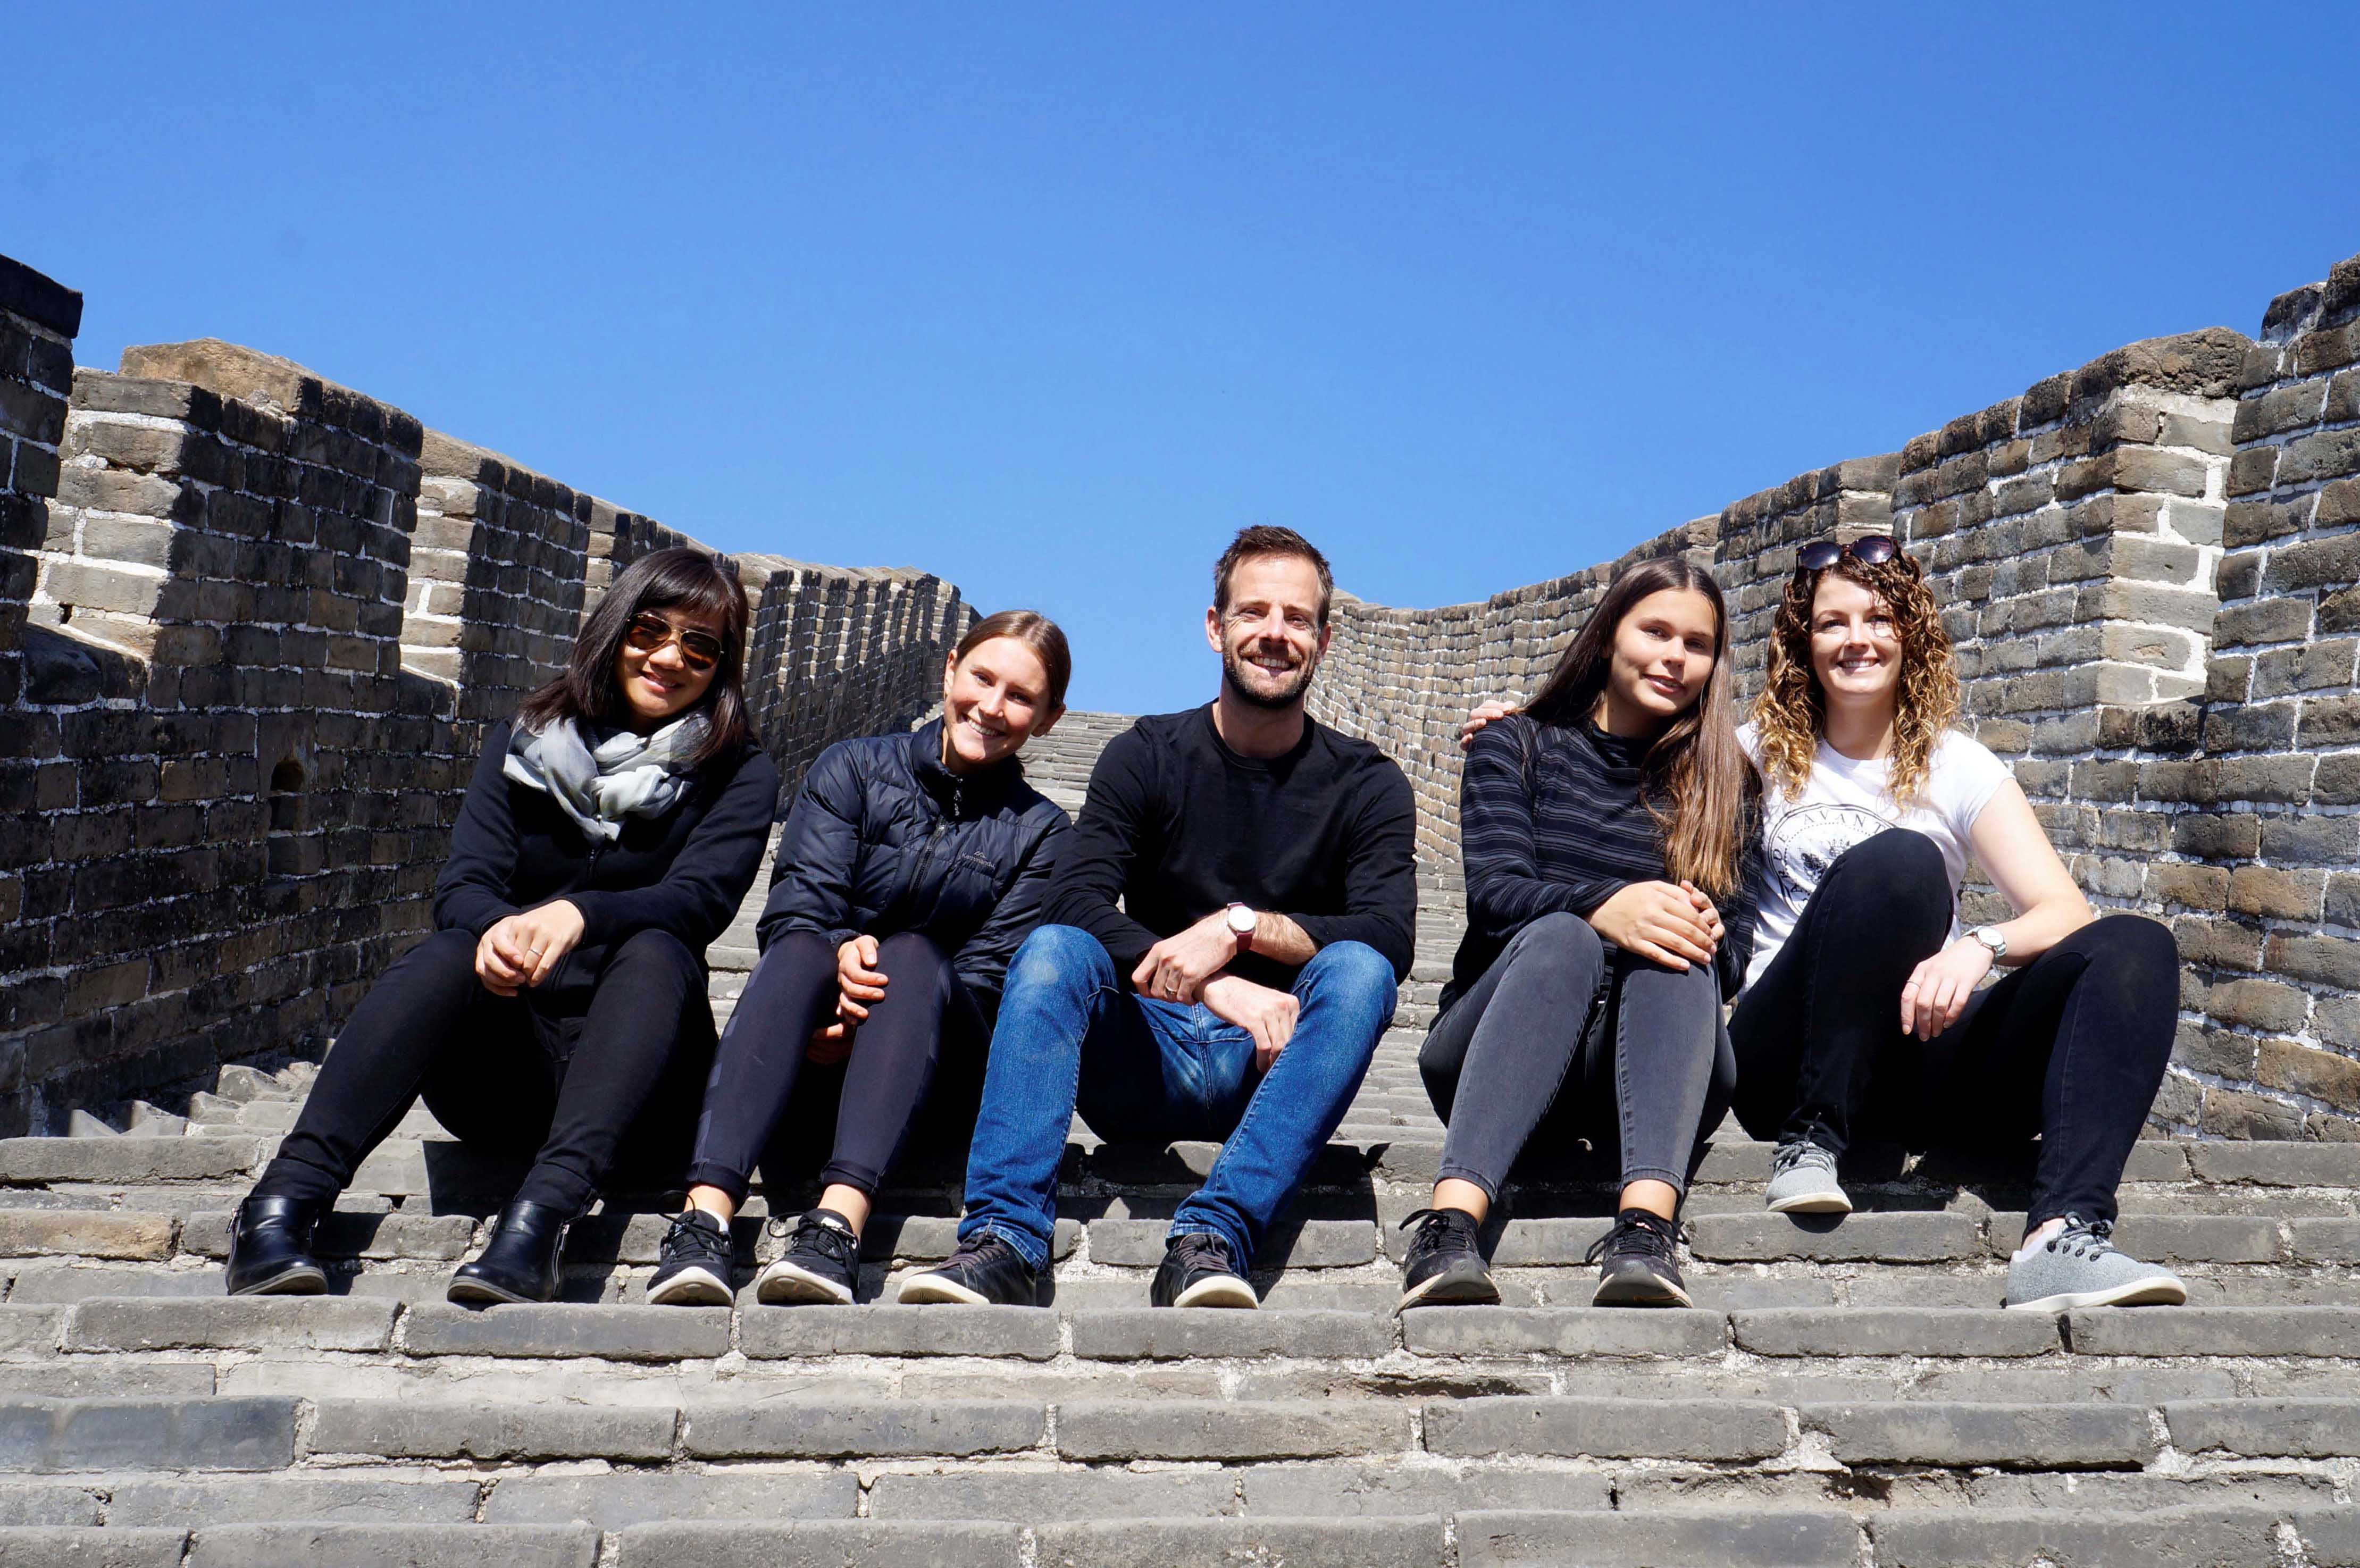 Five smiling adults sitting on a cement staircase on a sunny day in China from the Beijing Bound program